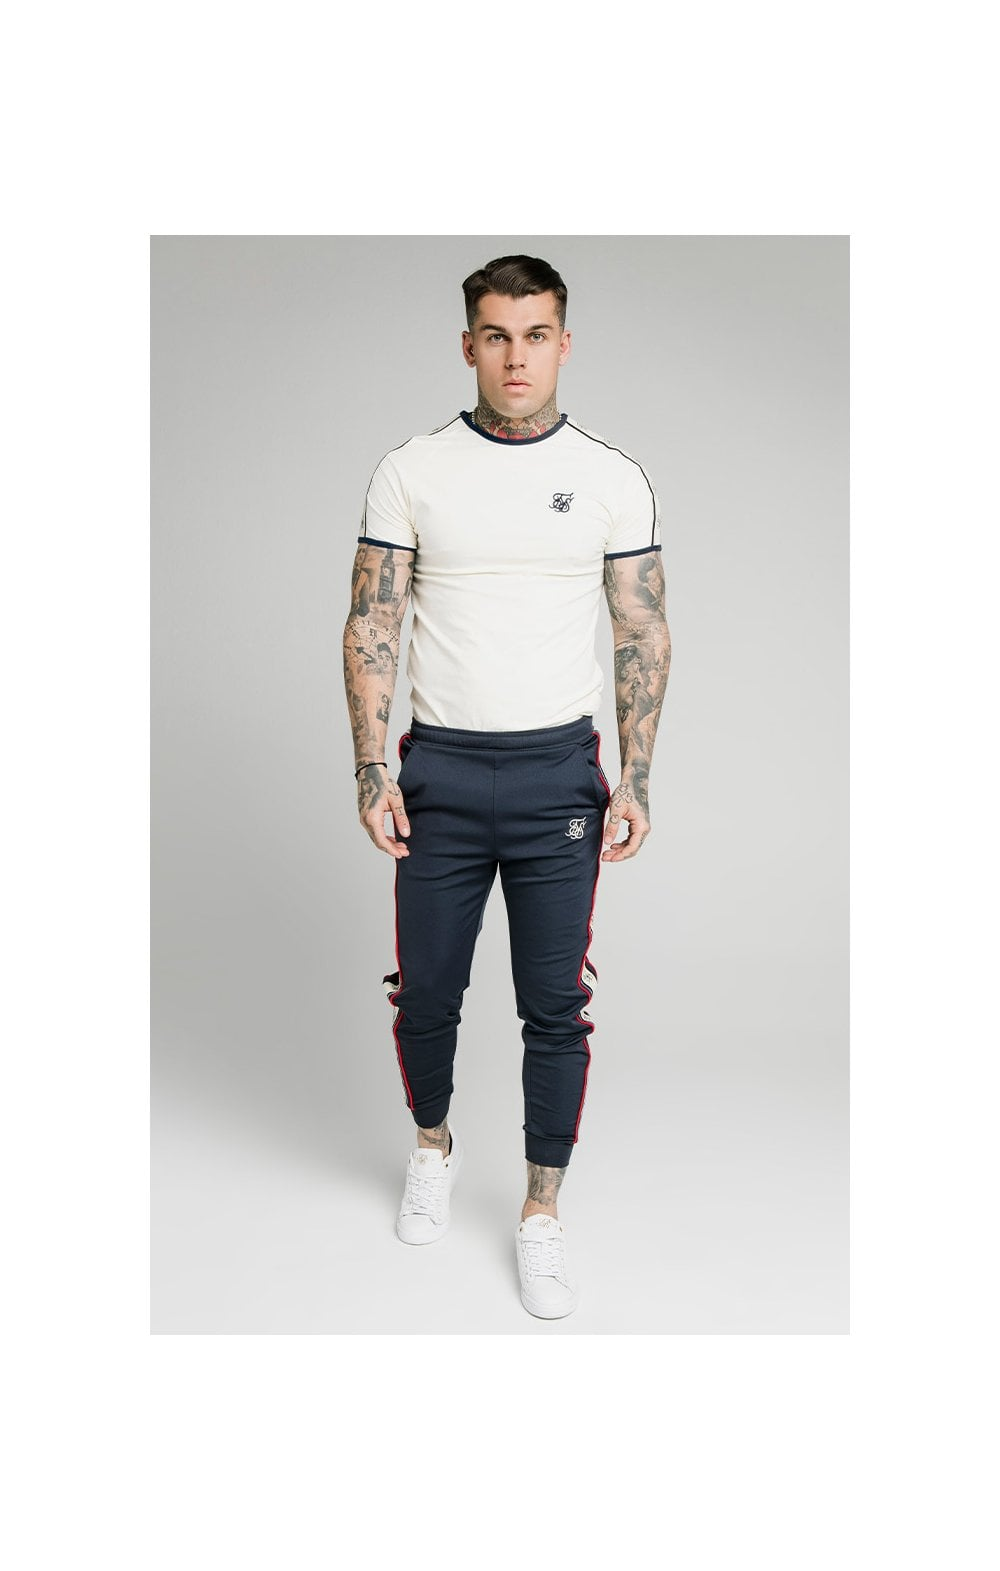 SikSilk S/S Premium Ringer Gym Tee - Off White (2)